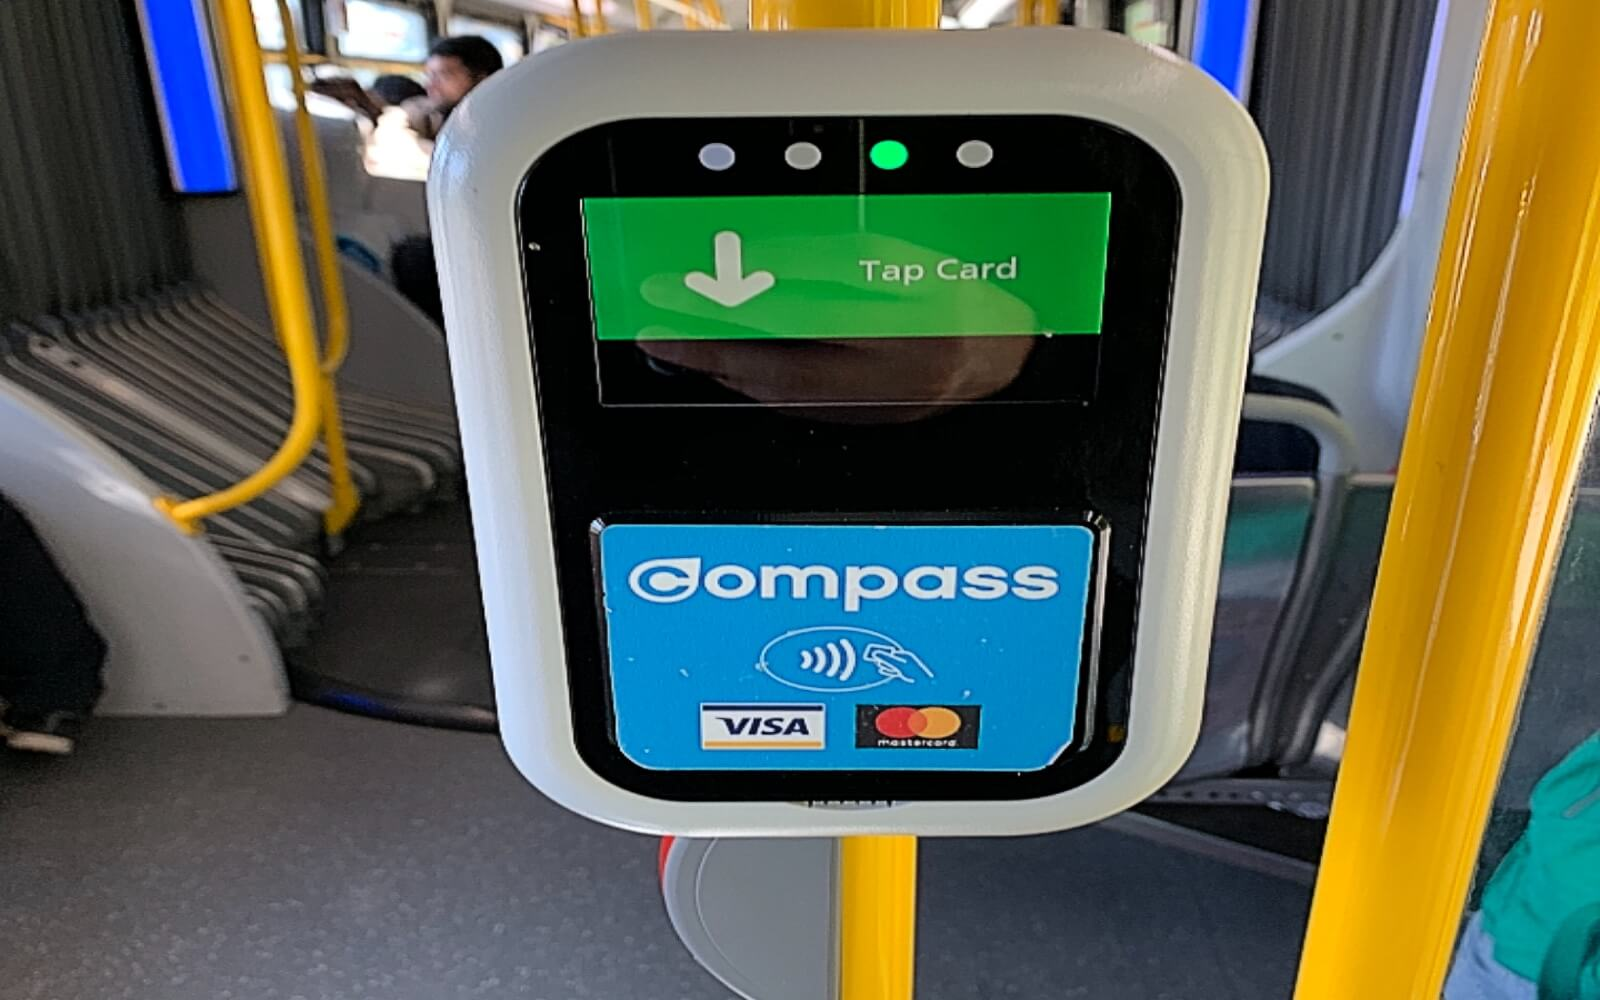 The Compass tap on a bus